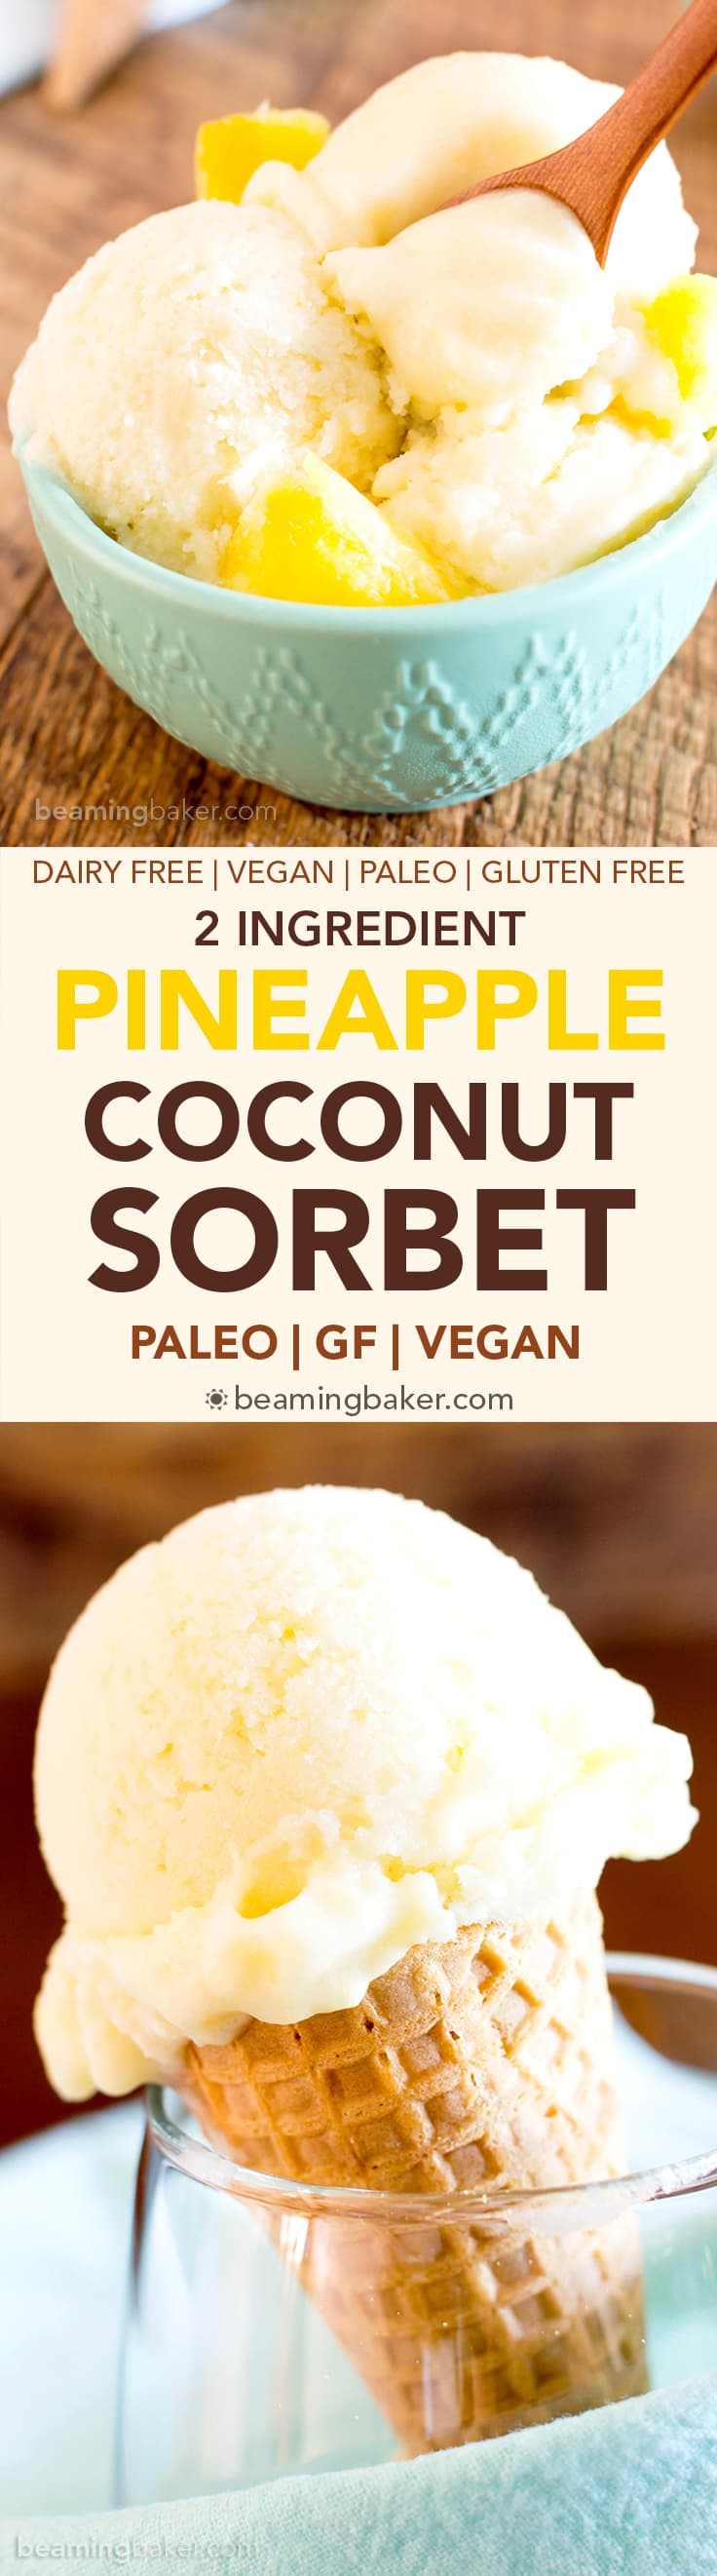 Pineapple Coconut Sorbet: just 2 ingredients and 5 minutes to make delicious coconut pineapple sorbet. Healthy, Dairy-Free, Paleo, Vegan. #Coconut #Pineapple #Sorbet #Vegan | Recipe at BeamingBaker.com